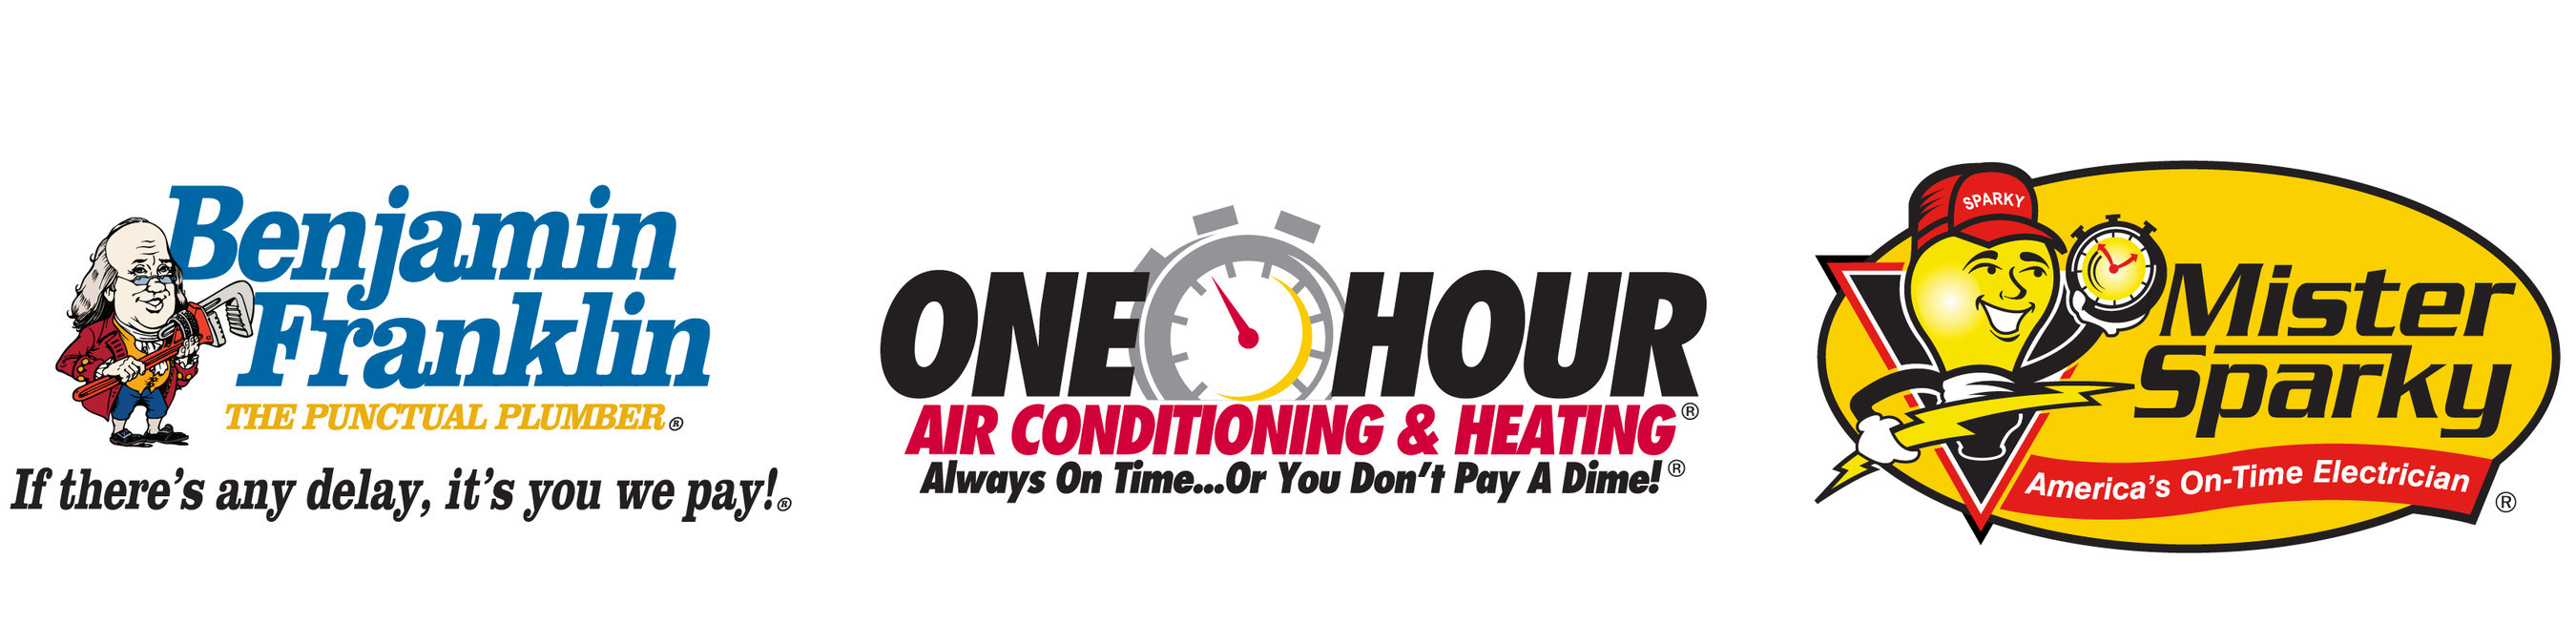 One Hour Heating & Air Conditioning, Benjamin Franklin Plumbing, Mister Sparky electric